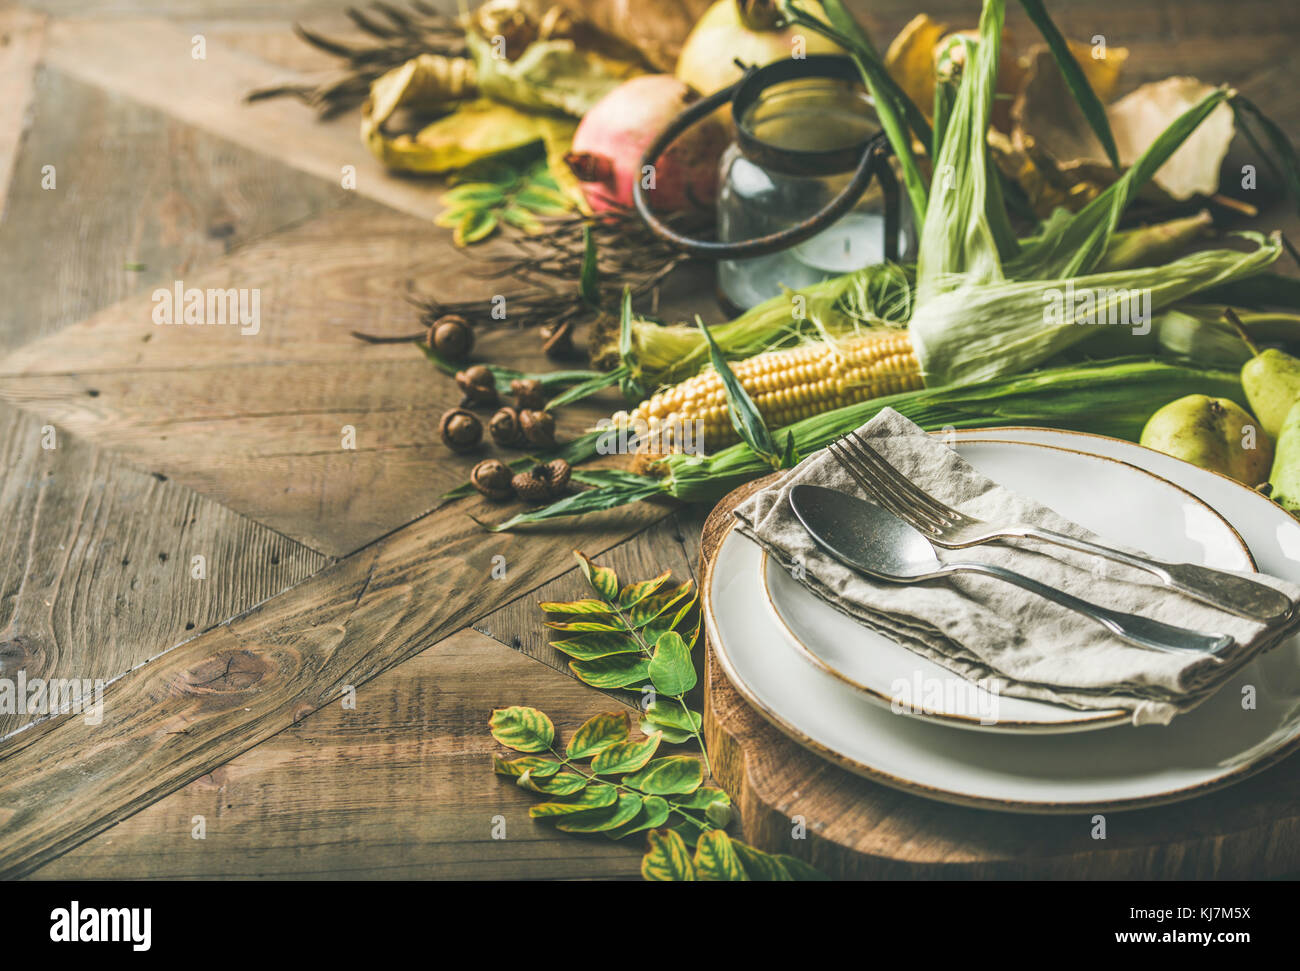 Fall table setting for Thanksgiving day celebration. Plate, cutlery, candle holder, Autumn seasonal vegetables, - Stock Image